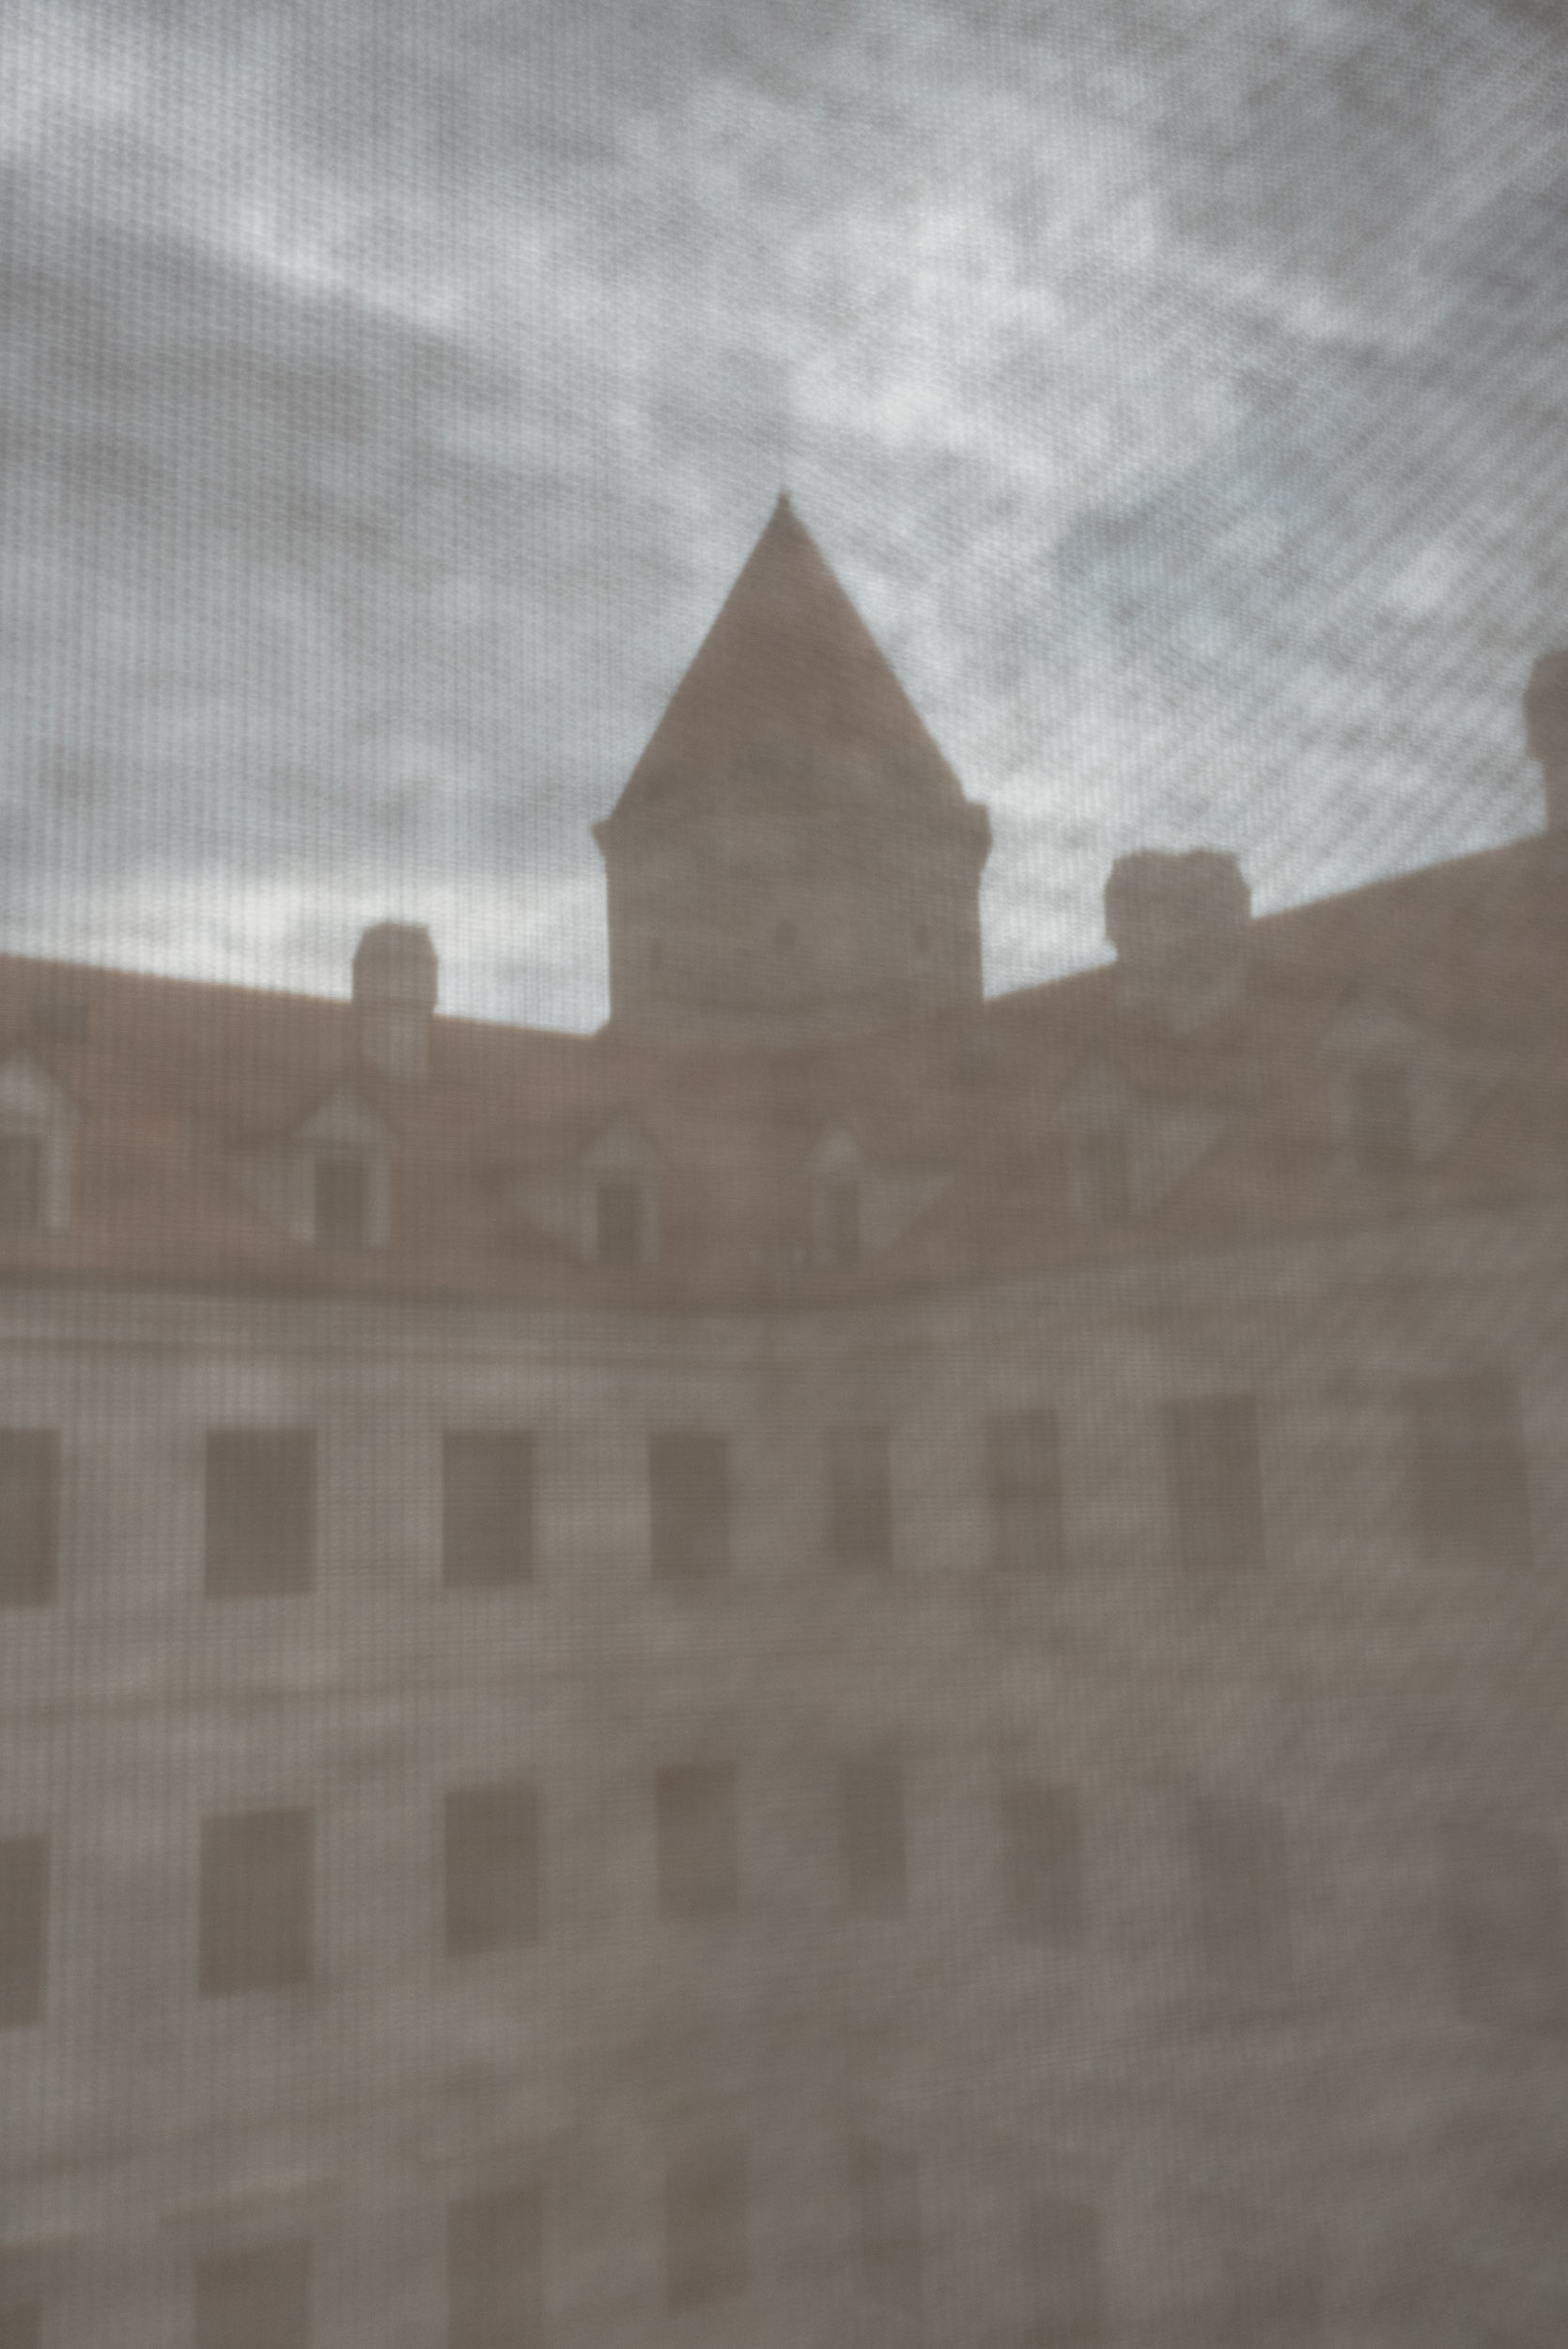 Bratislava castle through screen